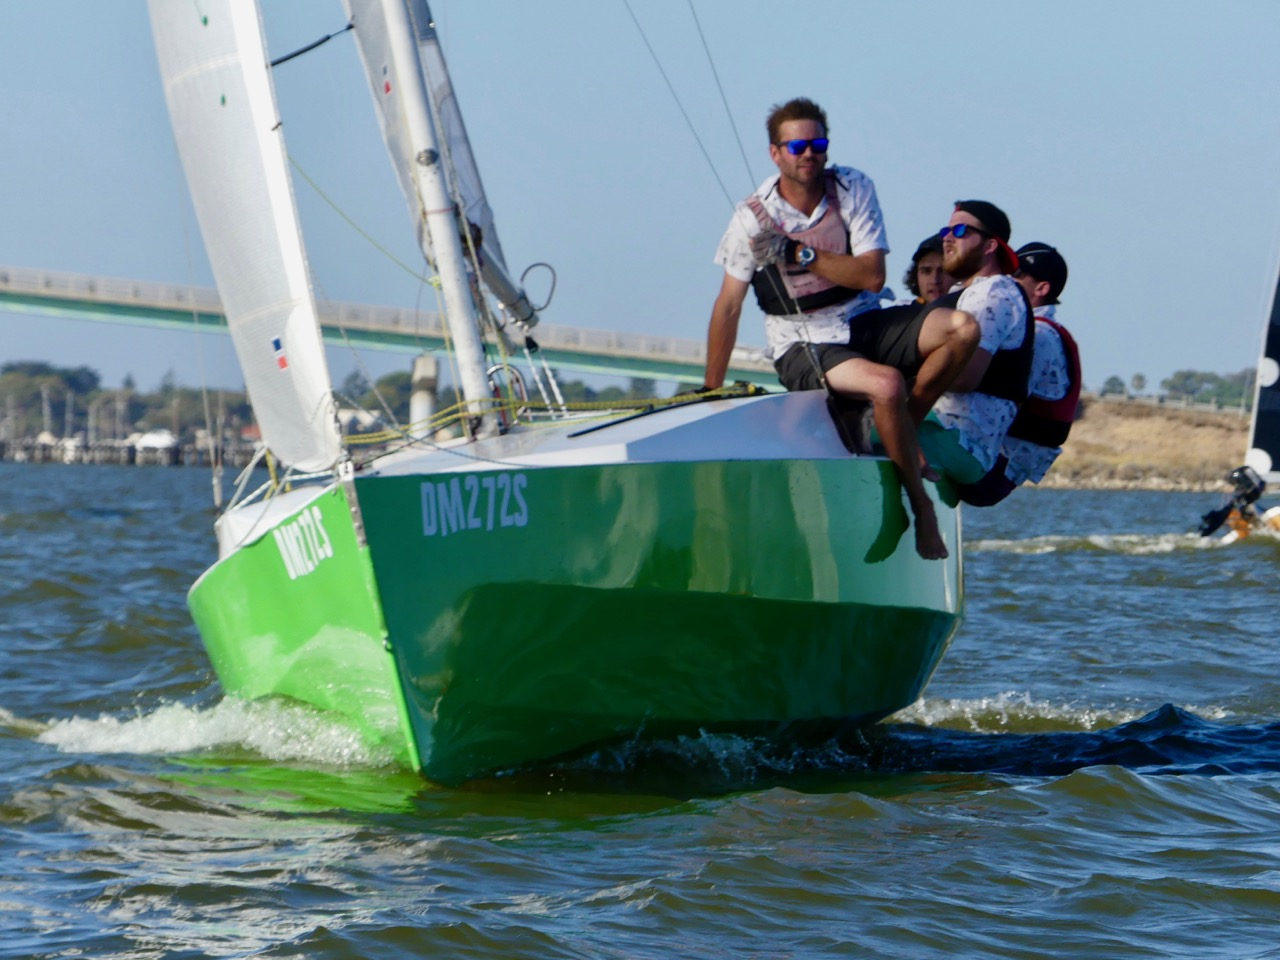 Intensity lifts during Dash for Cash racing | Goolwa Regatta Week